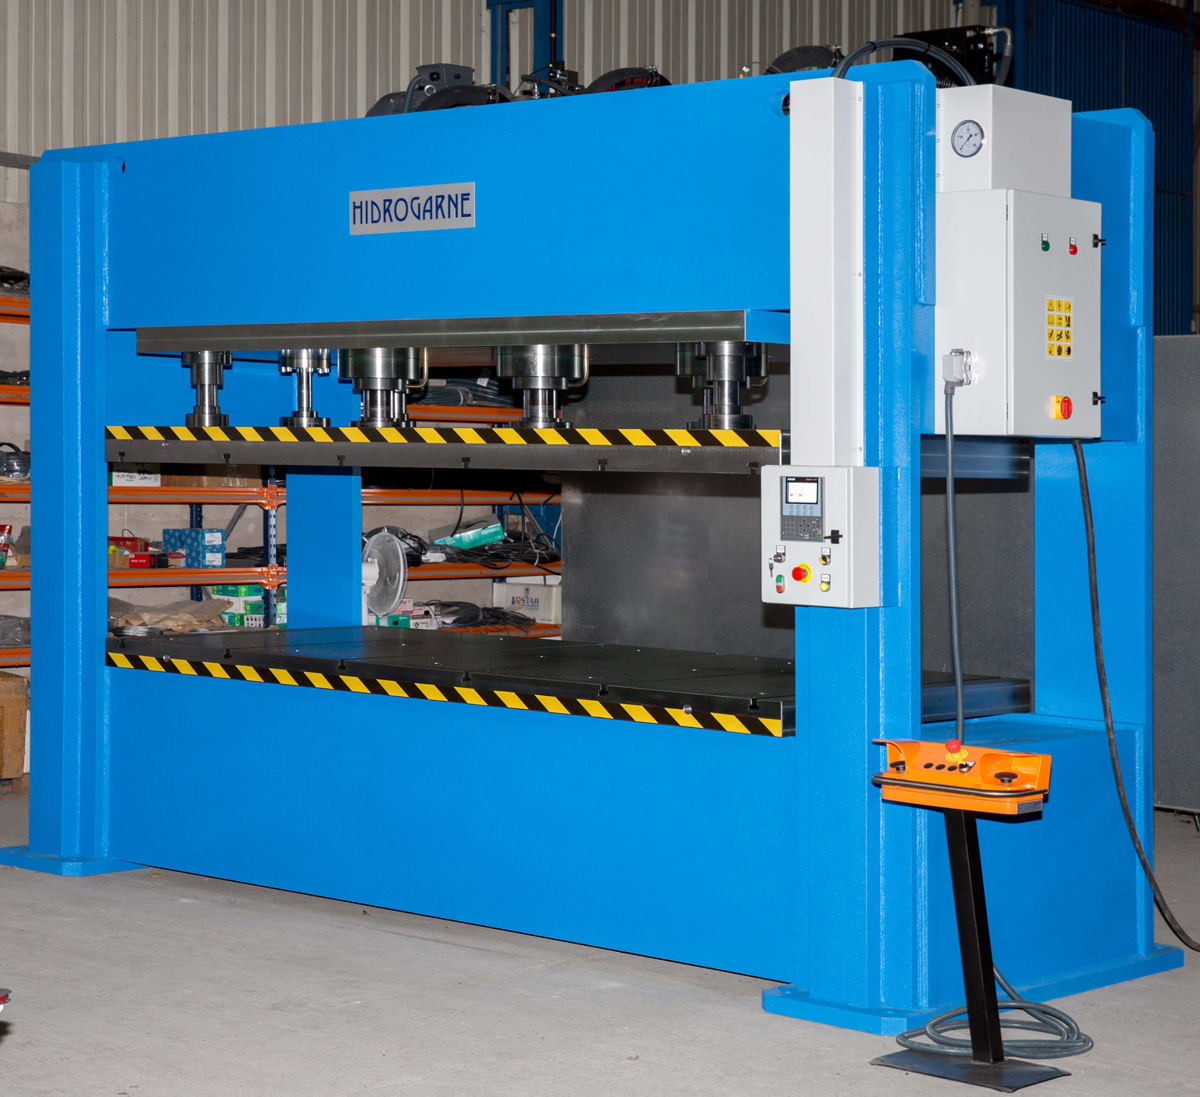 Hydraulic press, FDV-330 E model, especially efficient in forming and die-cutting works